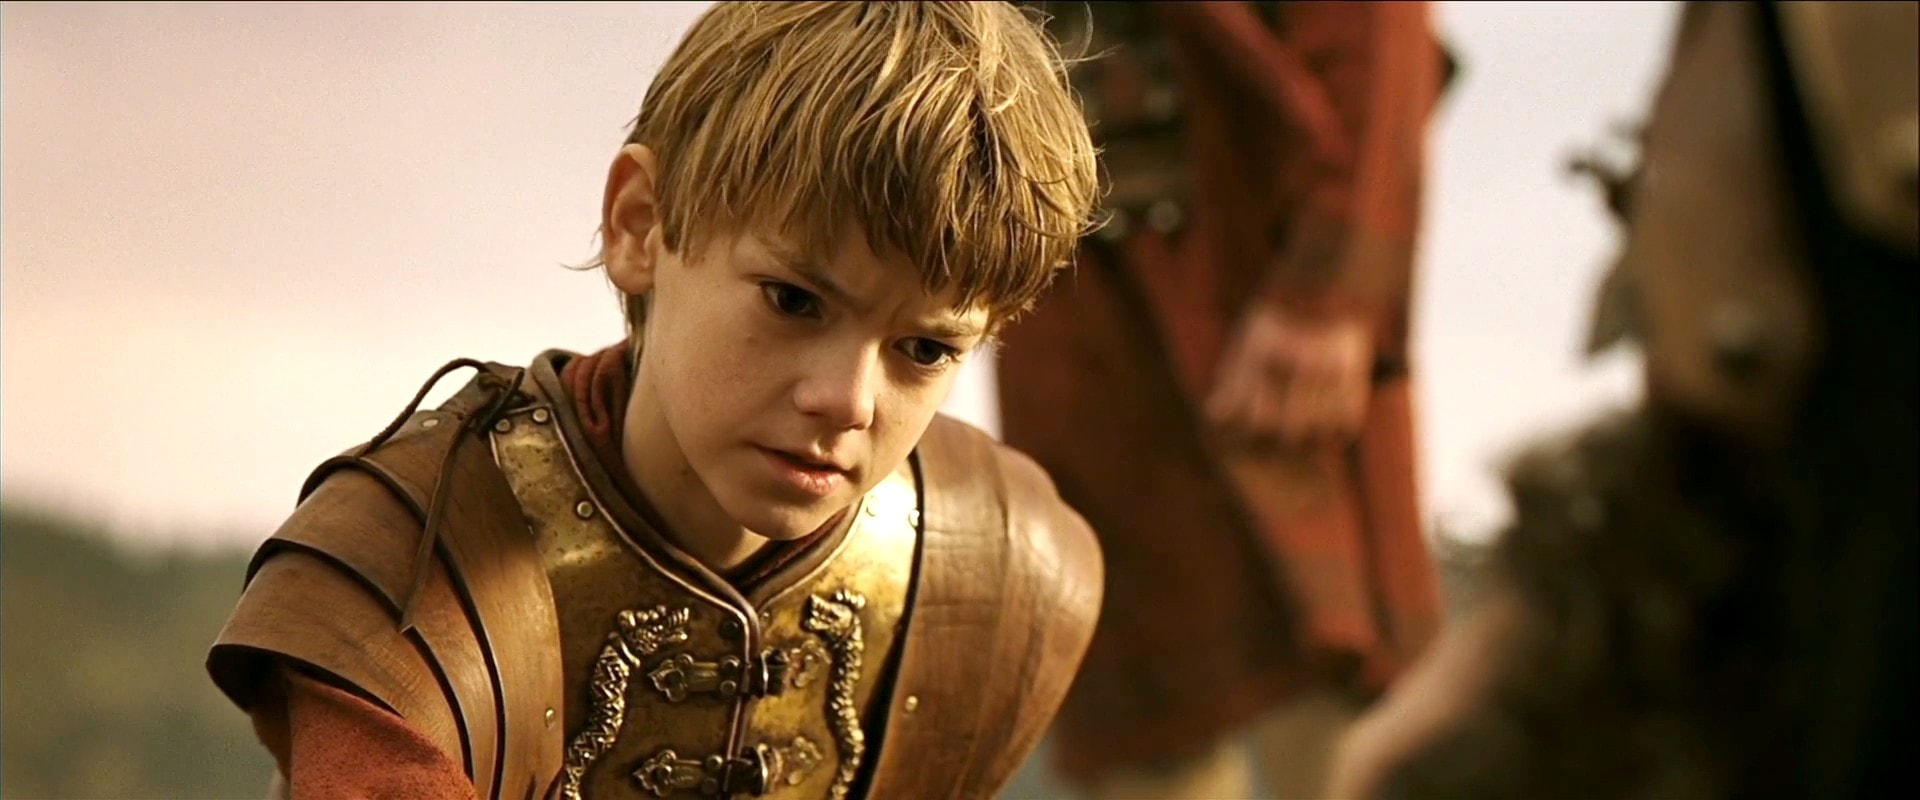 Thomas Brodie-Sangster Full hd wallpapers